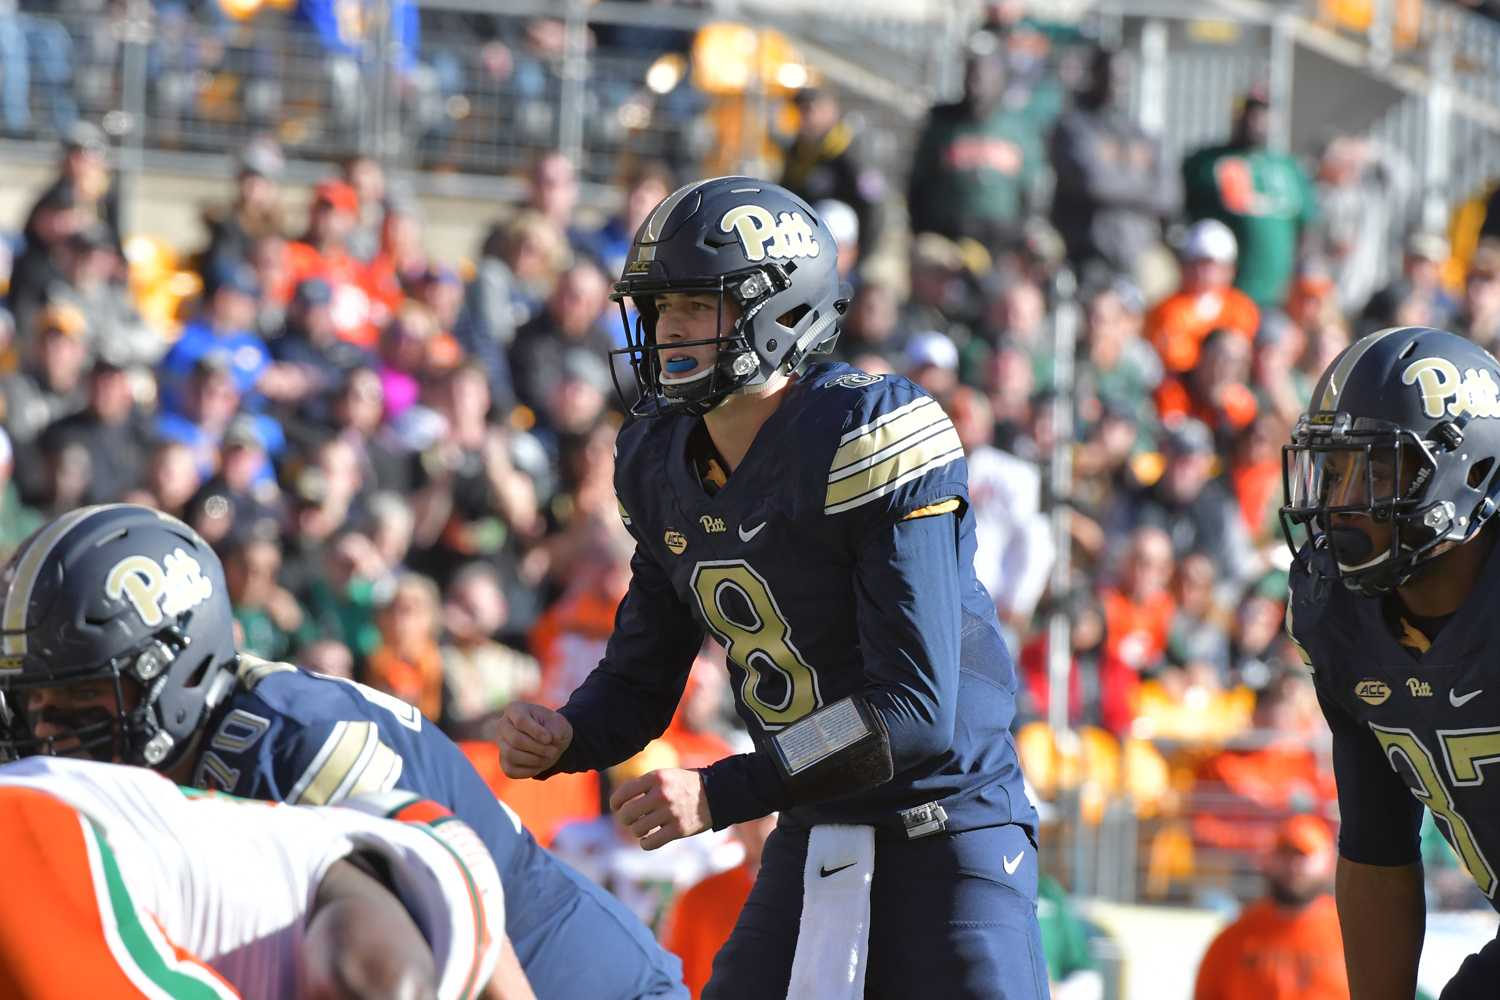 Sophomore quarterback Kenny Pickett ran in two  touchdowns during the Panthers' victory over Miami at Heinz Field last year. This year, Pitt lost in a game of ugly offenses. (Photo via Pete Madia/Pitt Athletics)